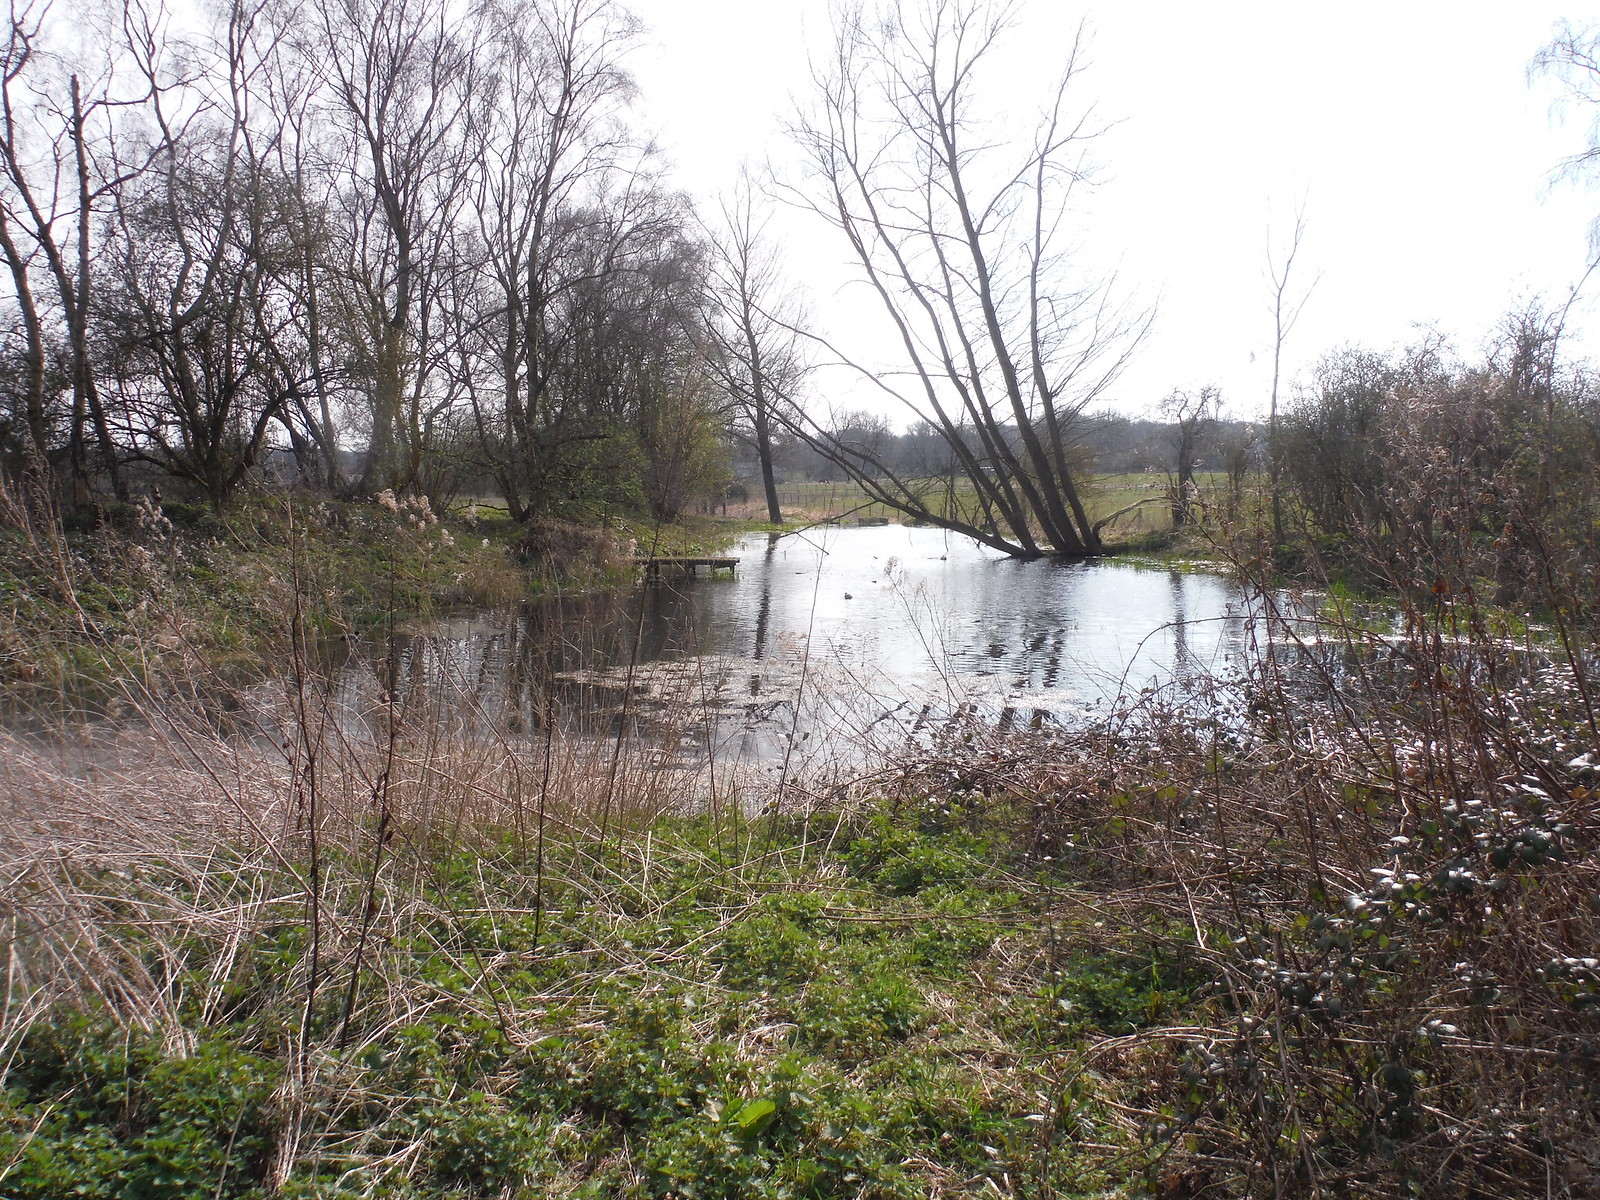 Pond in the Pang Valley SWC Walk 260 Aldermaston to Woolhampton [Midgham Station] (via Frilsham)